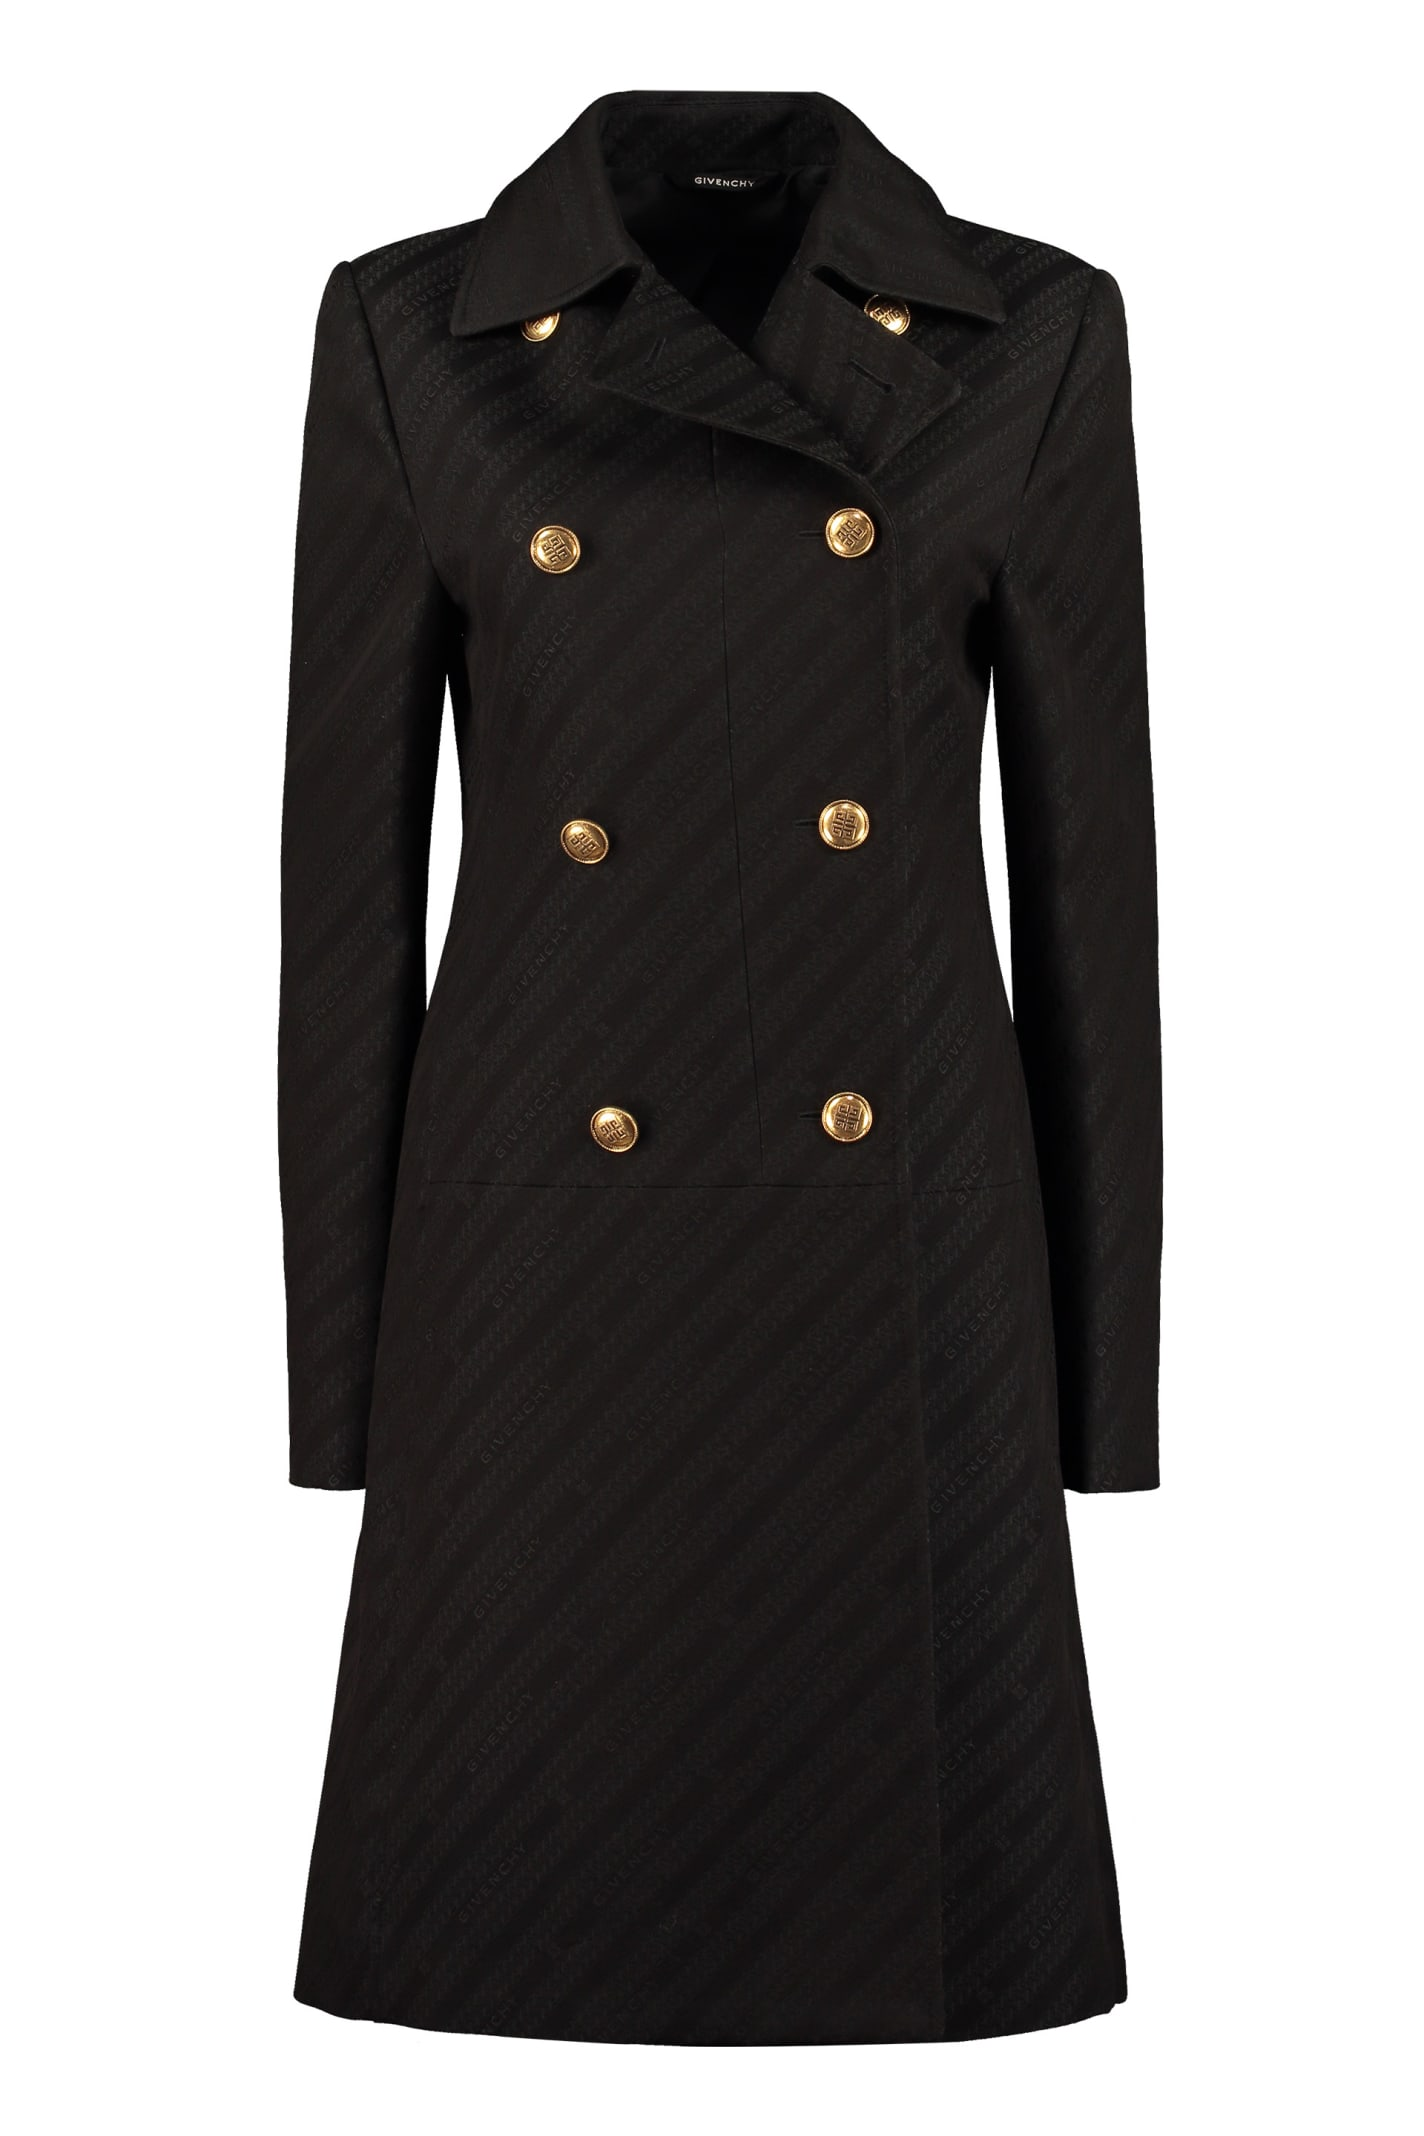 Givenchy Double-breasted Coat